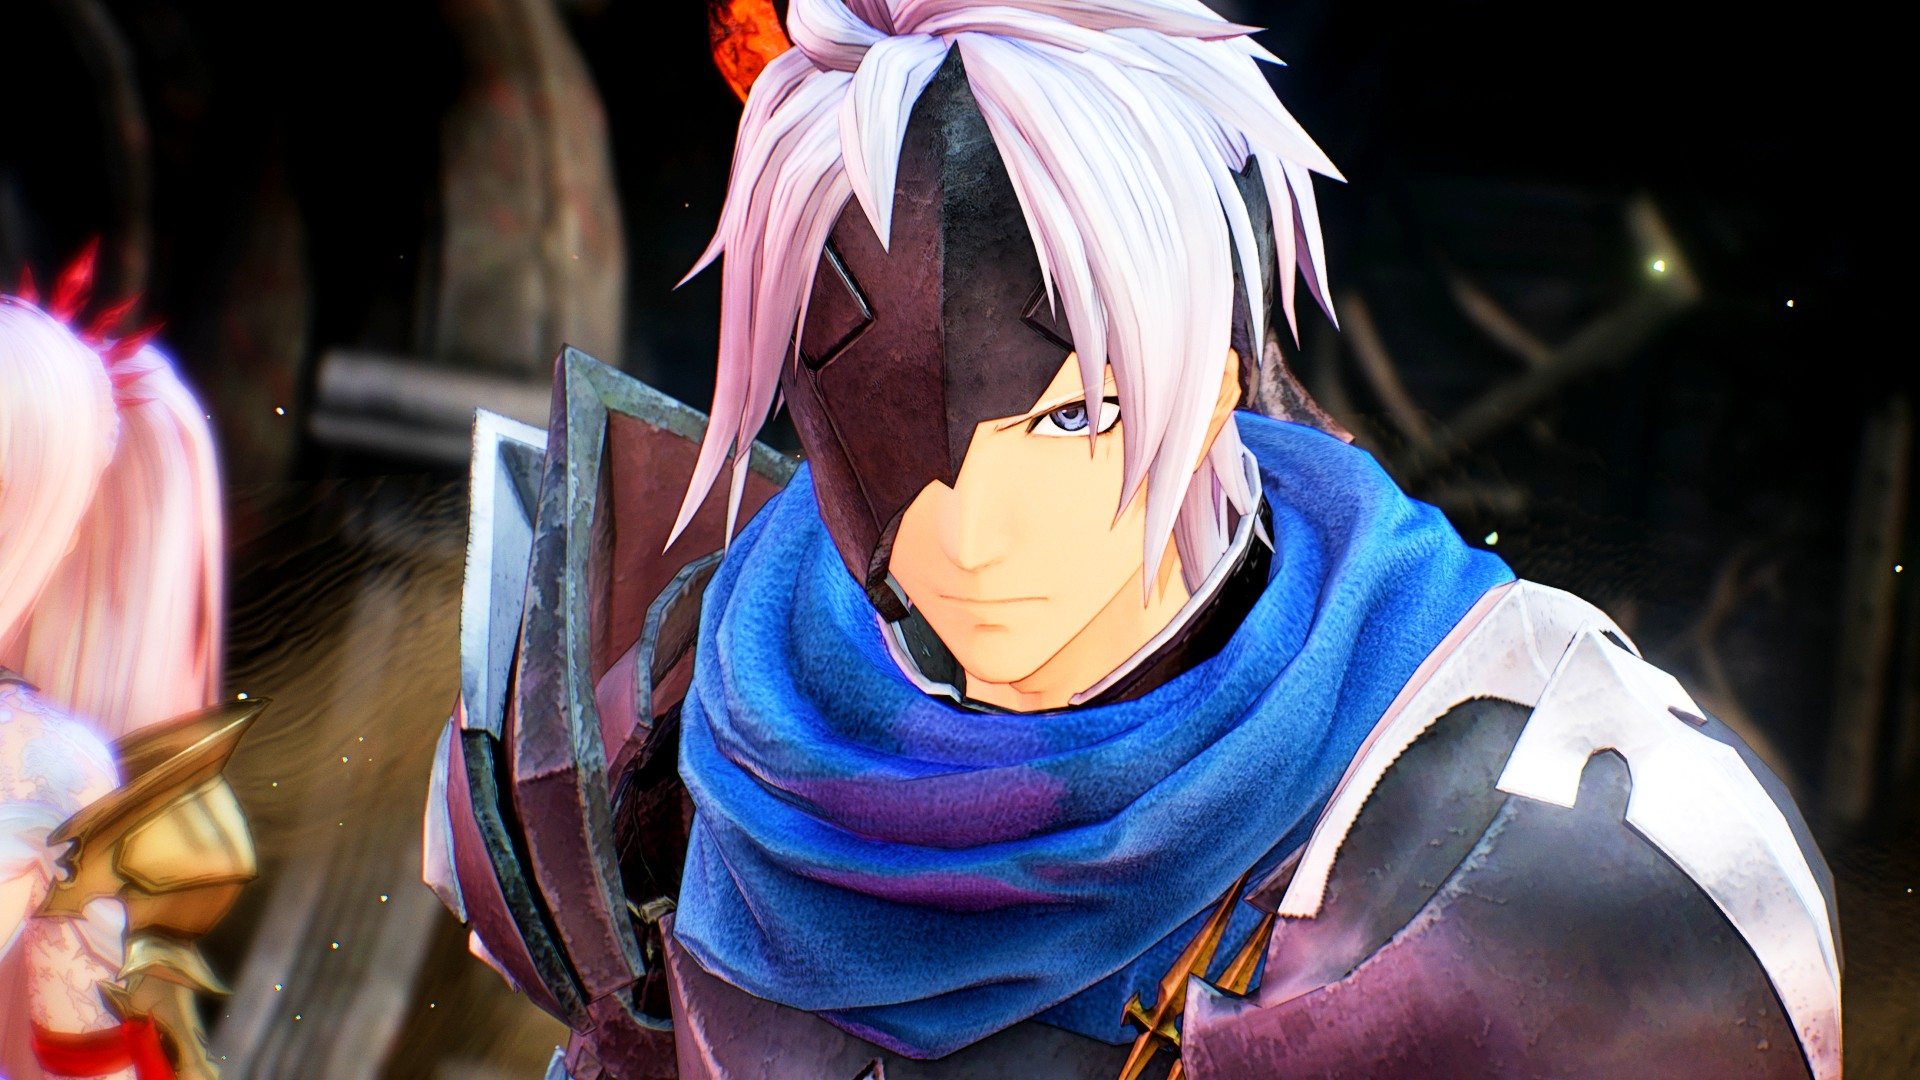 Tales of Arise has already topped Zestiria and Berseria's Steam player records